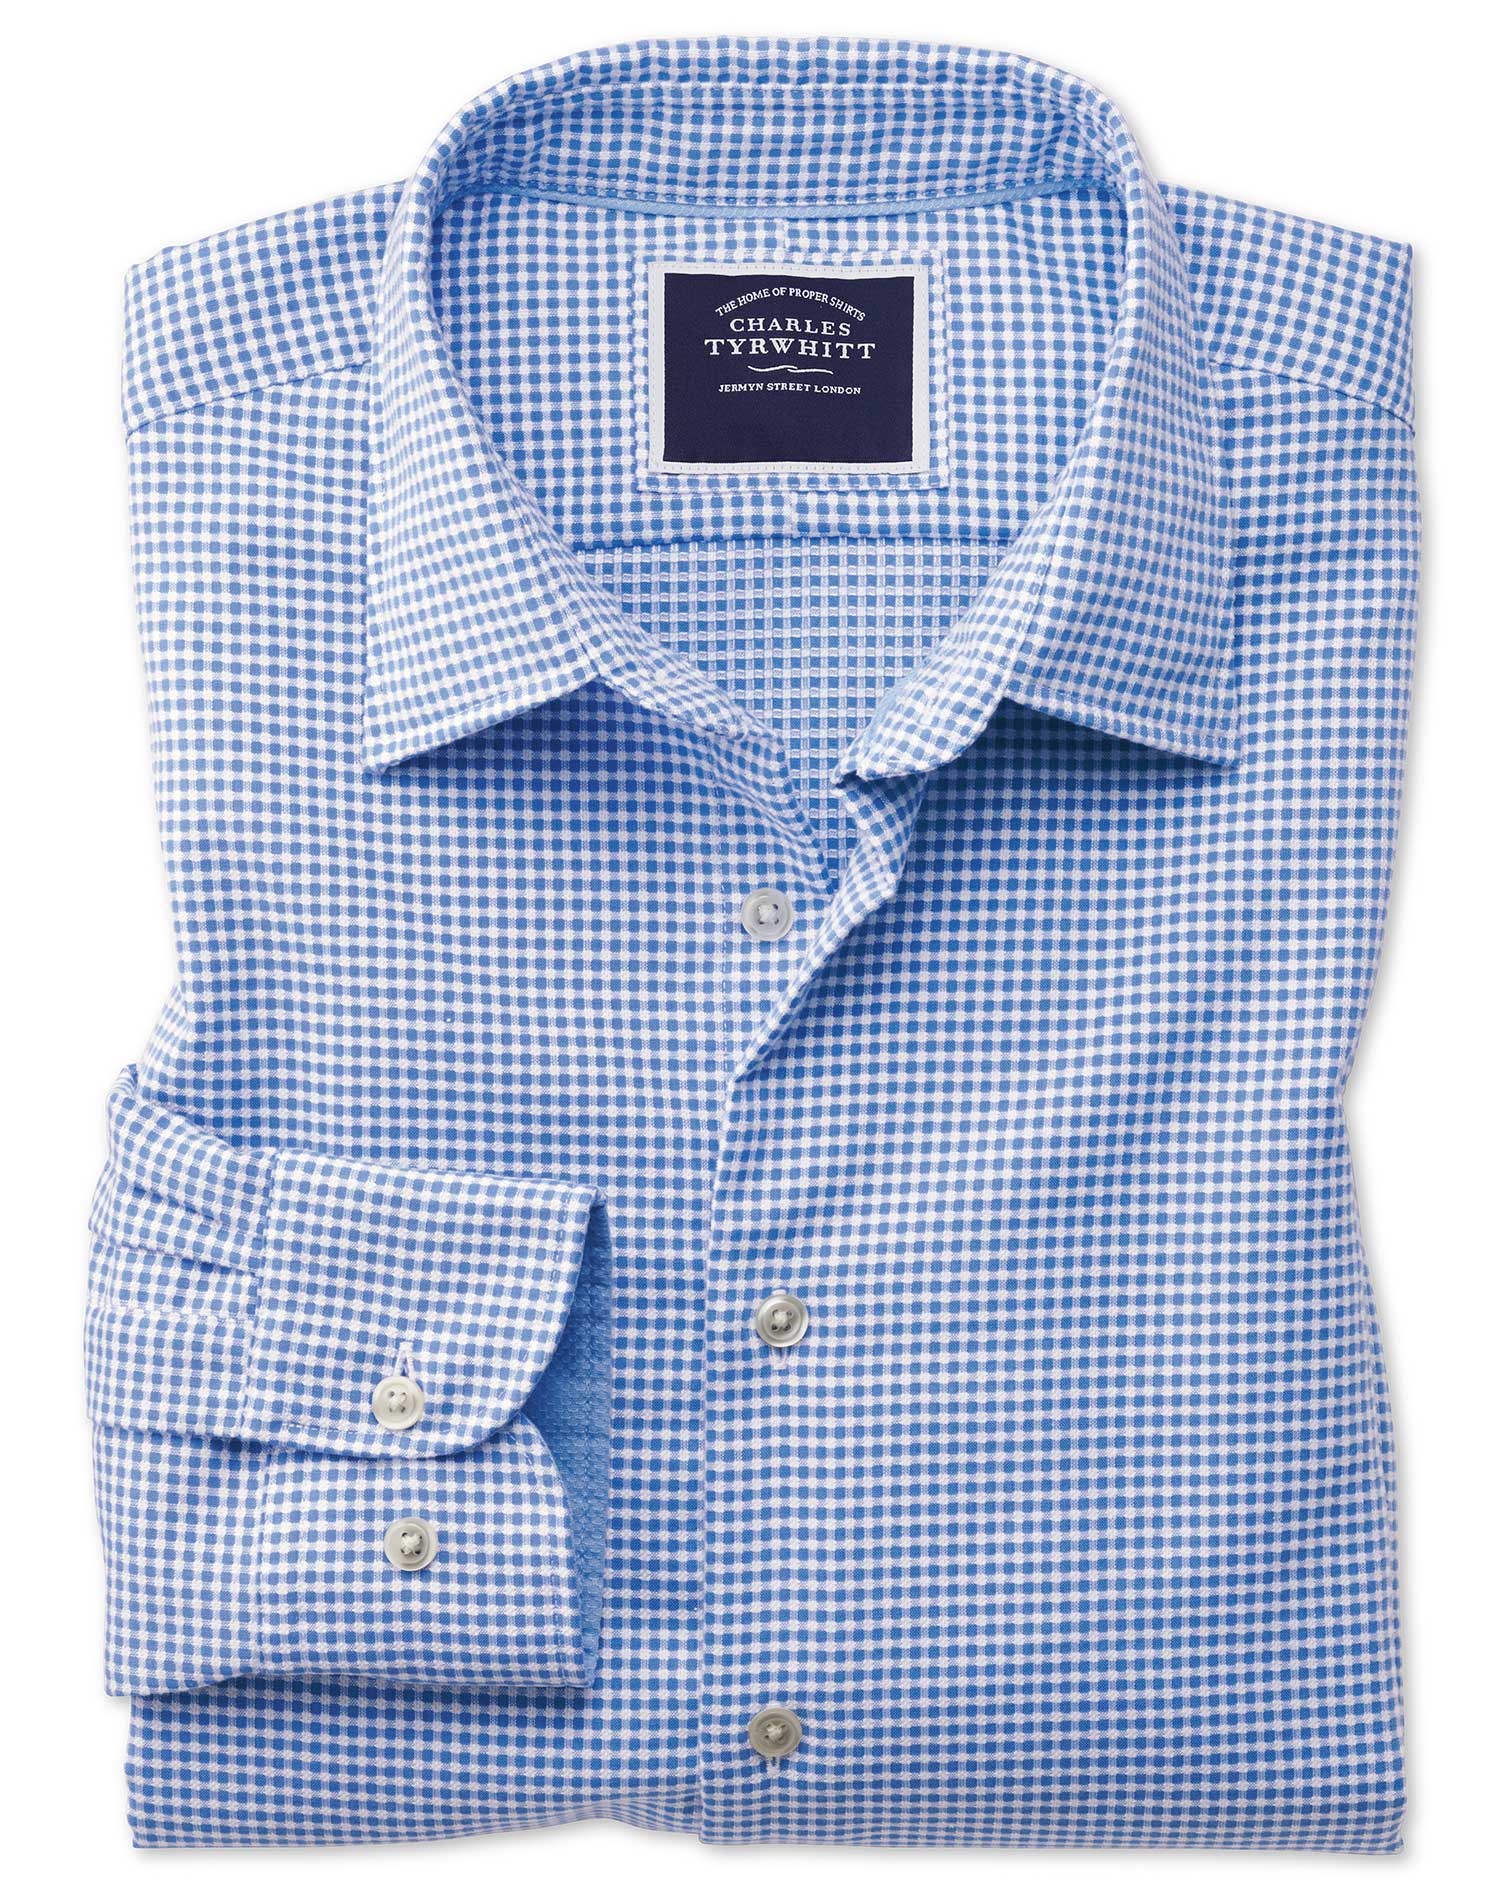 Classic Fit Washed Blue Textured Check Cotton Shirt Single Cuff Size XL by Charles Tyrwhitt